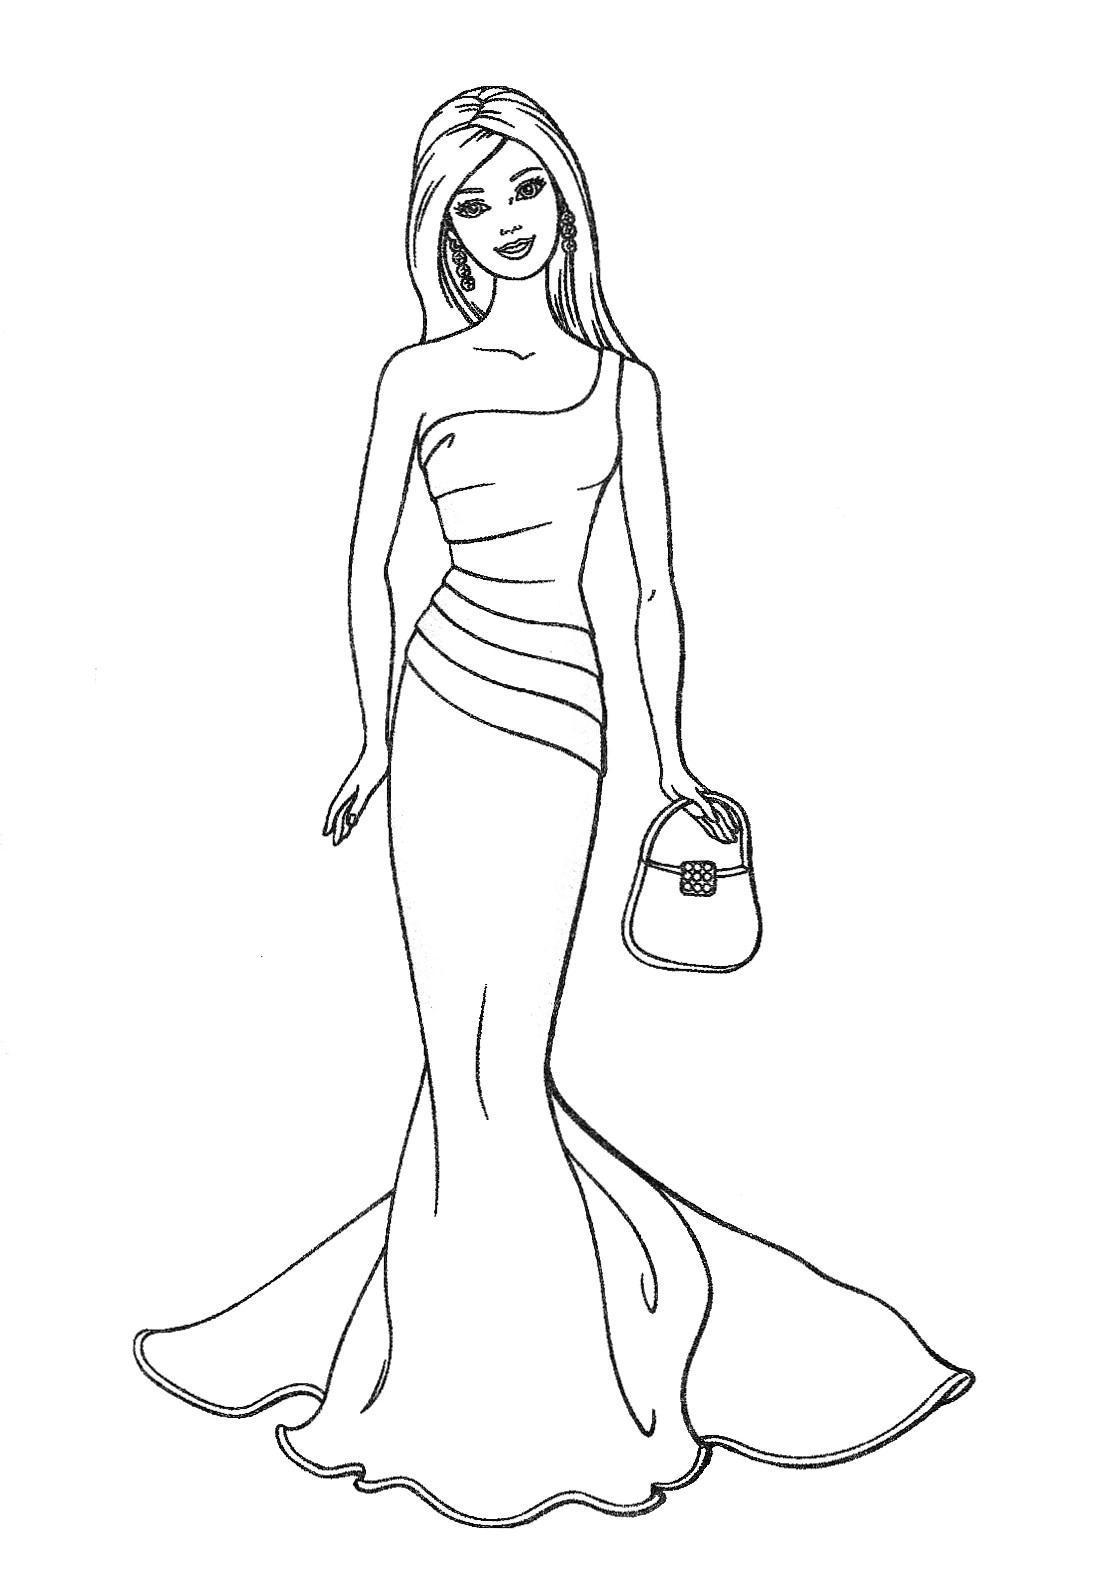 Coloriage de barbie imprimer coloriages barbie coloriages pour enfants - Dessin de barbie sirene ...